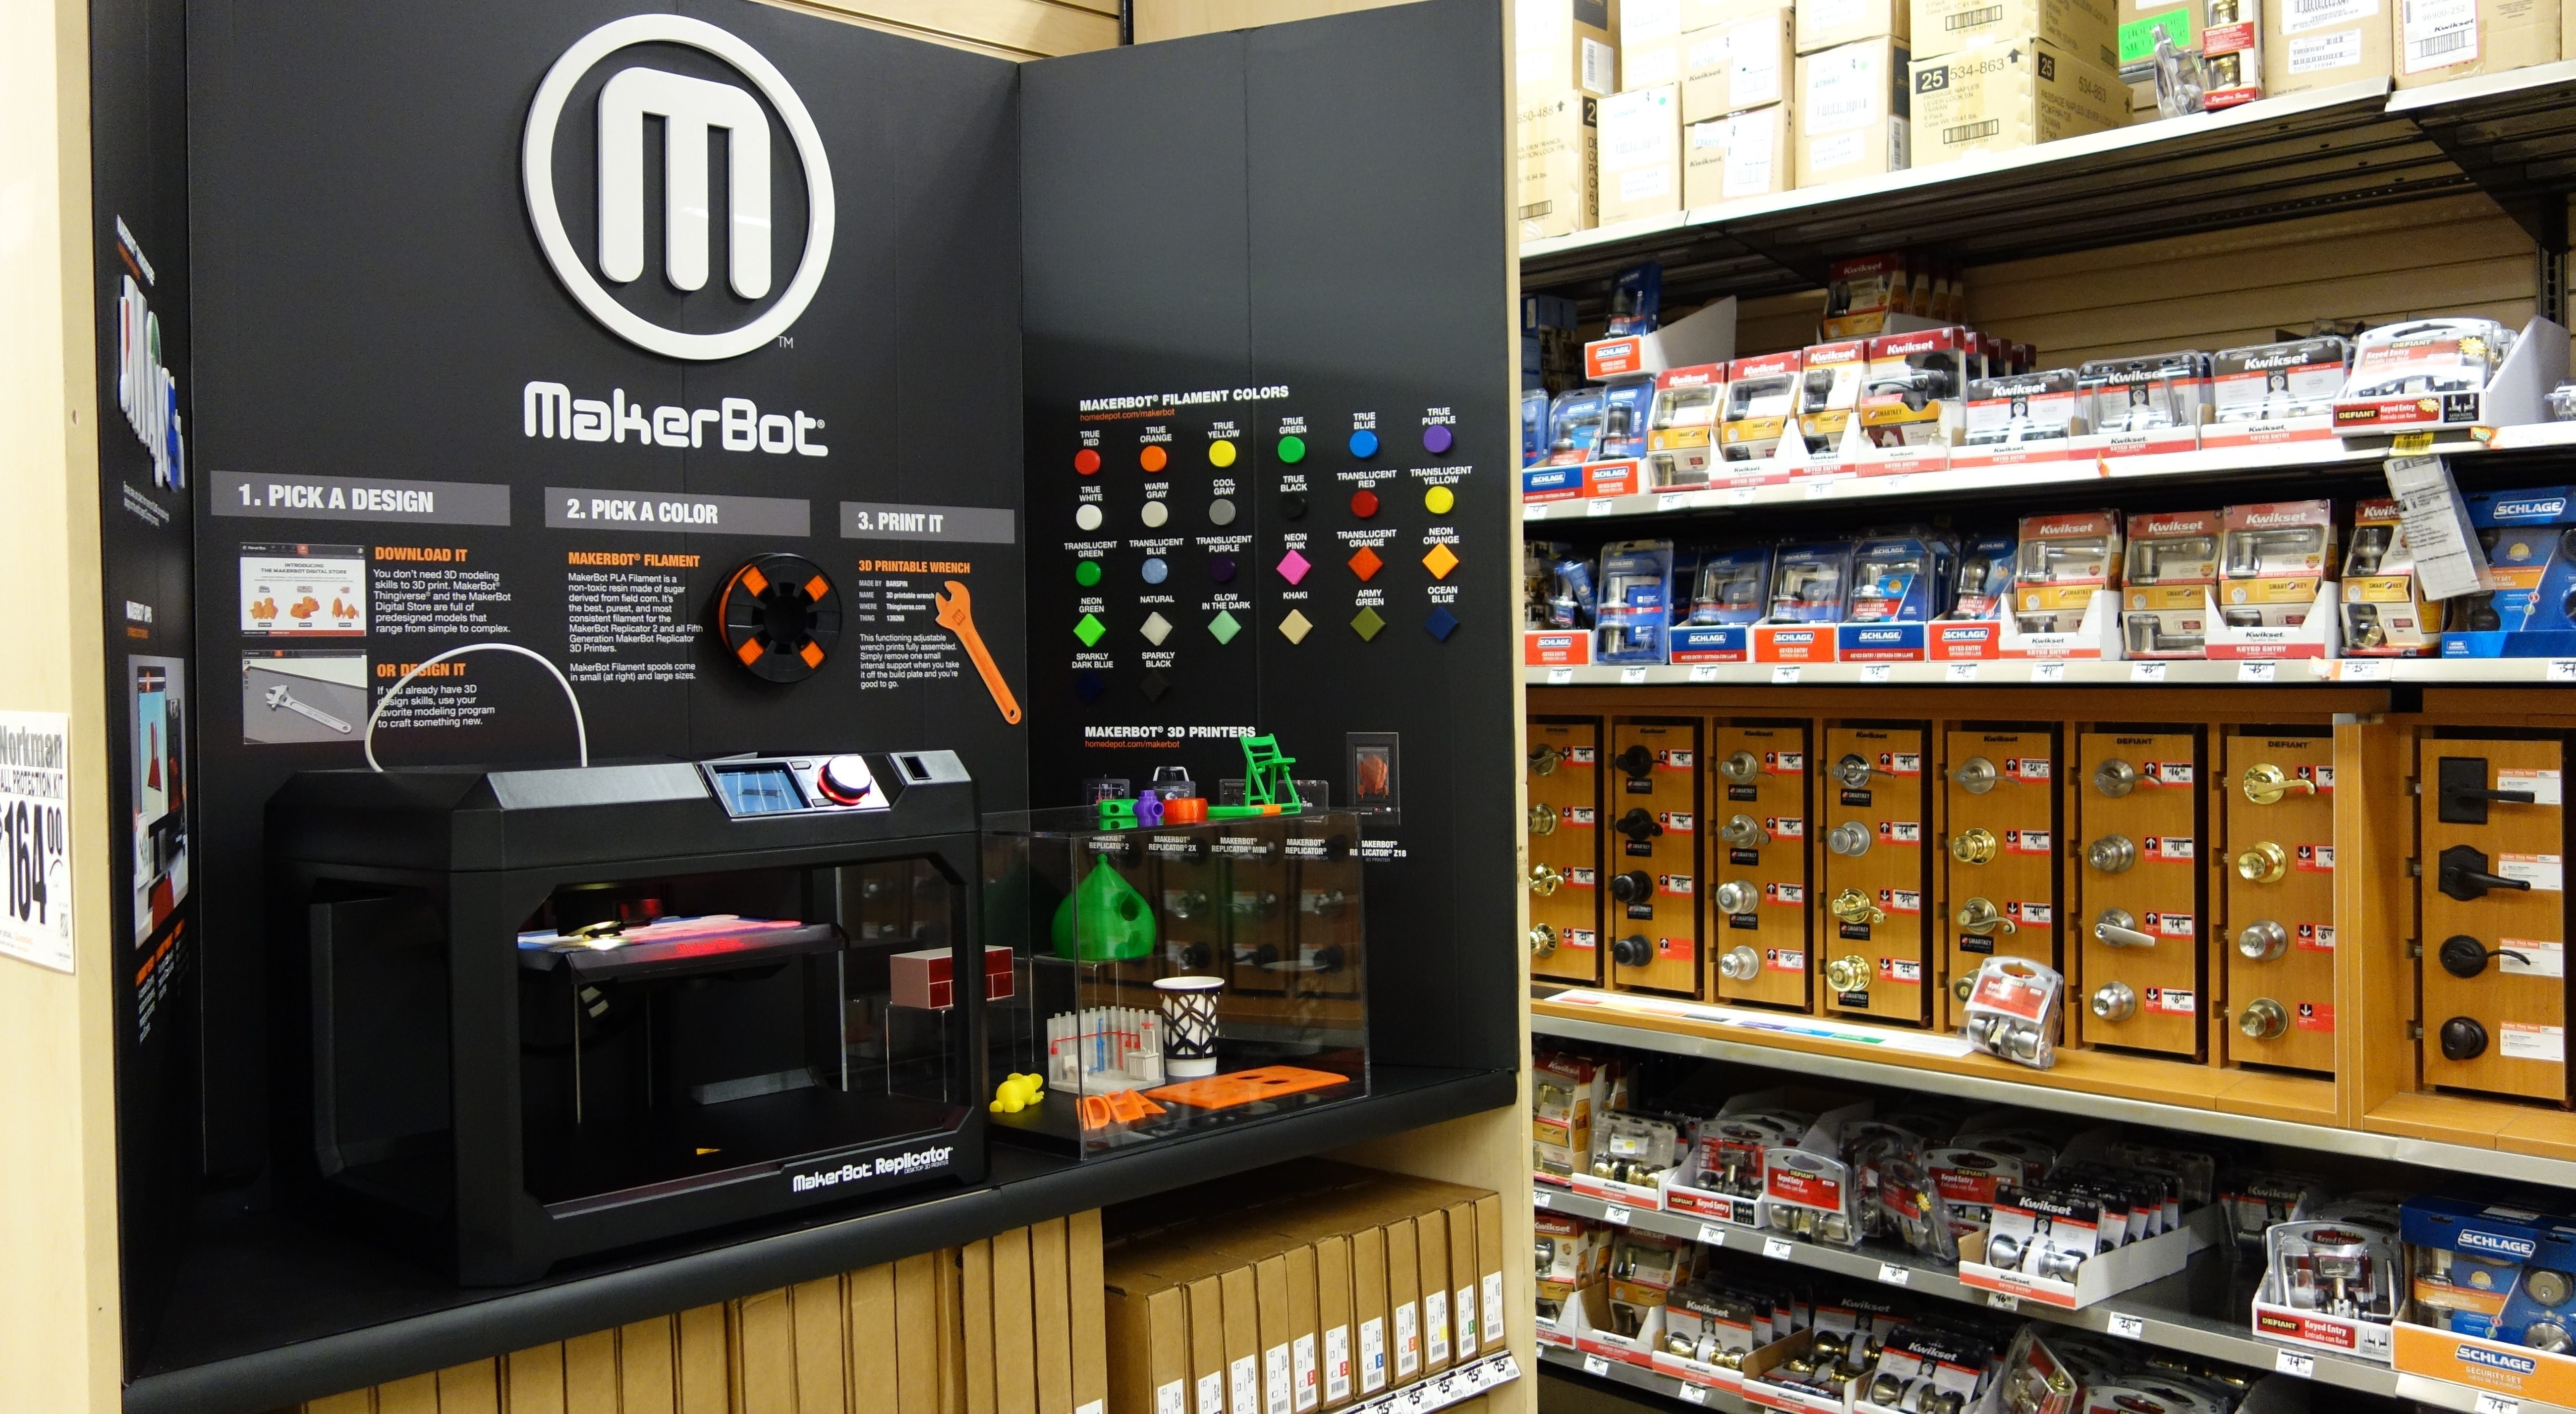 Makerbot And The Home Depot Bring Makerbot 3d Printers To Homedepot Com And Select Stores Business Wire